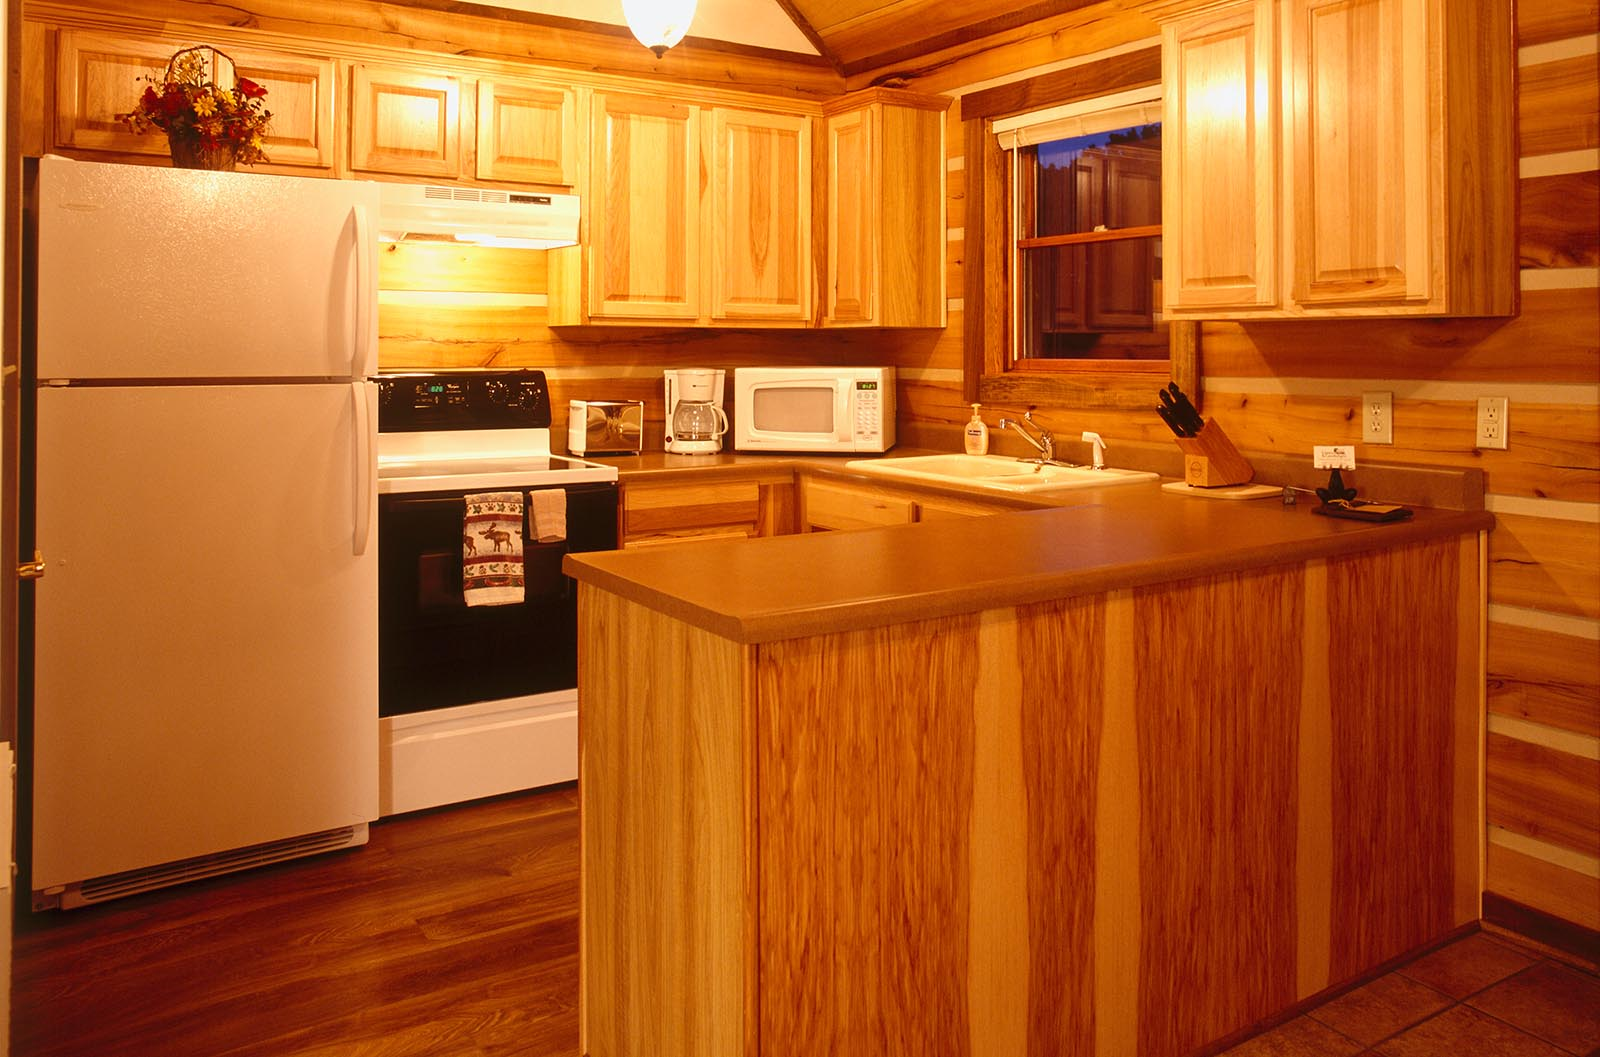 Full size kitchen at Cabins & Candlelight